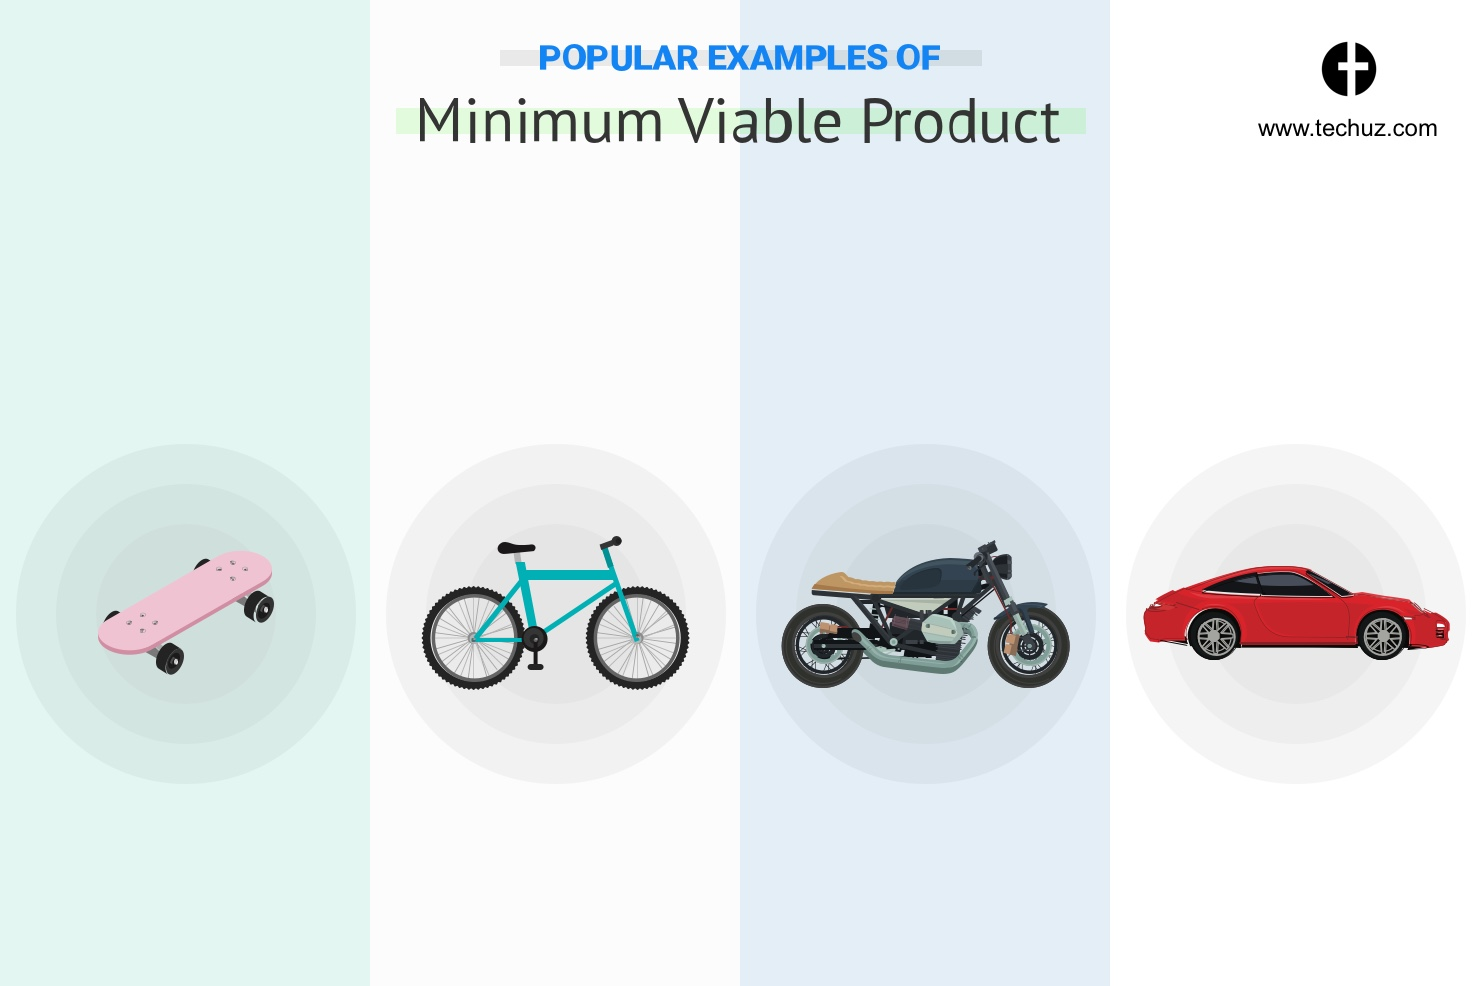 What Are the Popular Minimum Viable Product Examples & How to Apply Them to Your Startup?